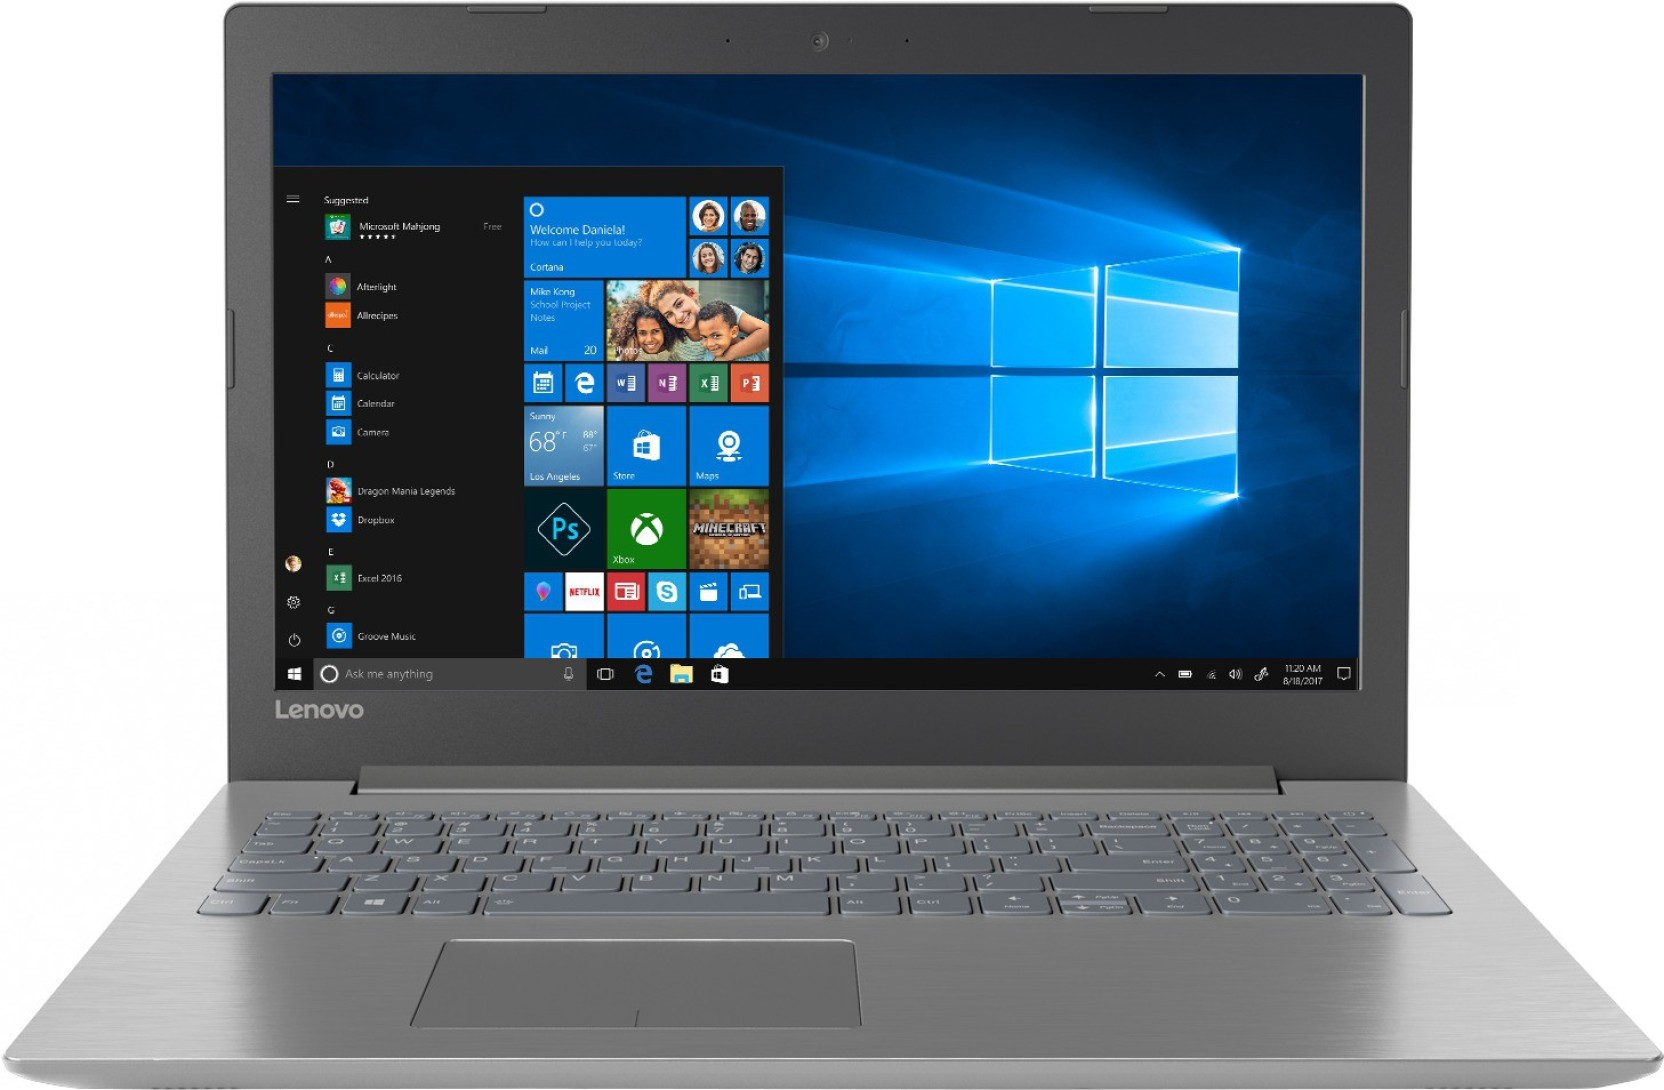 Lenovo Ideapad Core I3 6th Gen 8 Gb 1 Tb Hdd Windows 10 Home 2 Wiring Diagramselectrical Photosmovies Photo Albums Ring Circuit Add To Cart